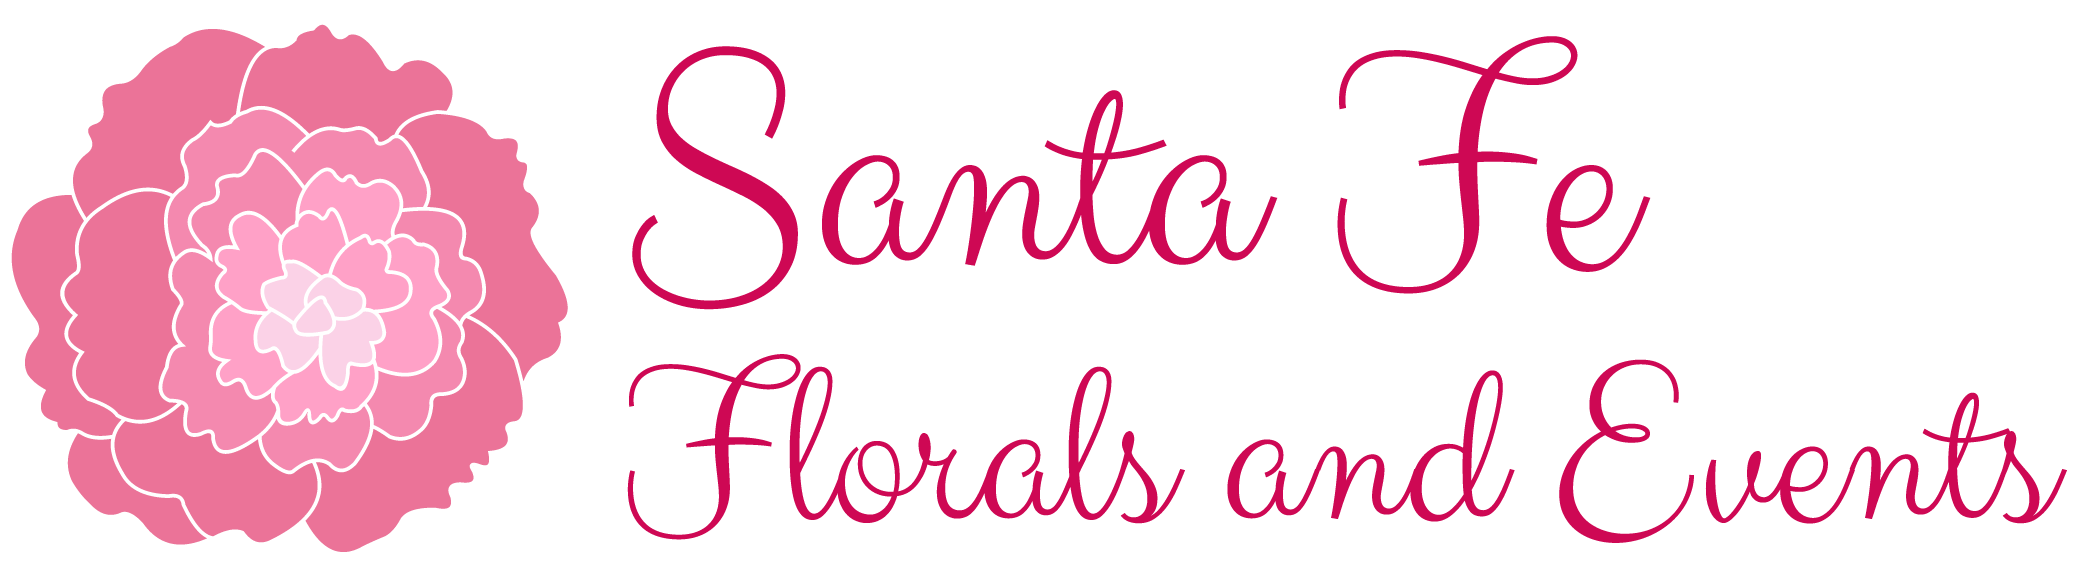 Santa Fe Florals and Events - Flower Delivery in Vista, CA